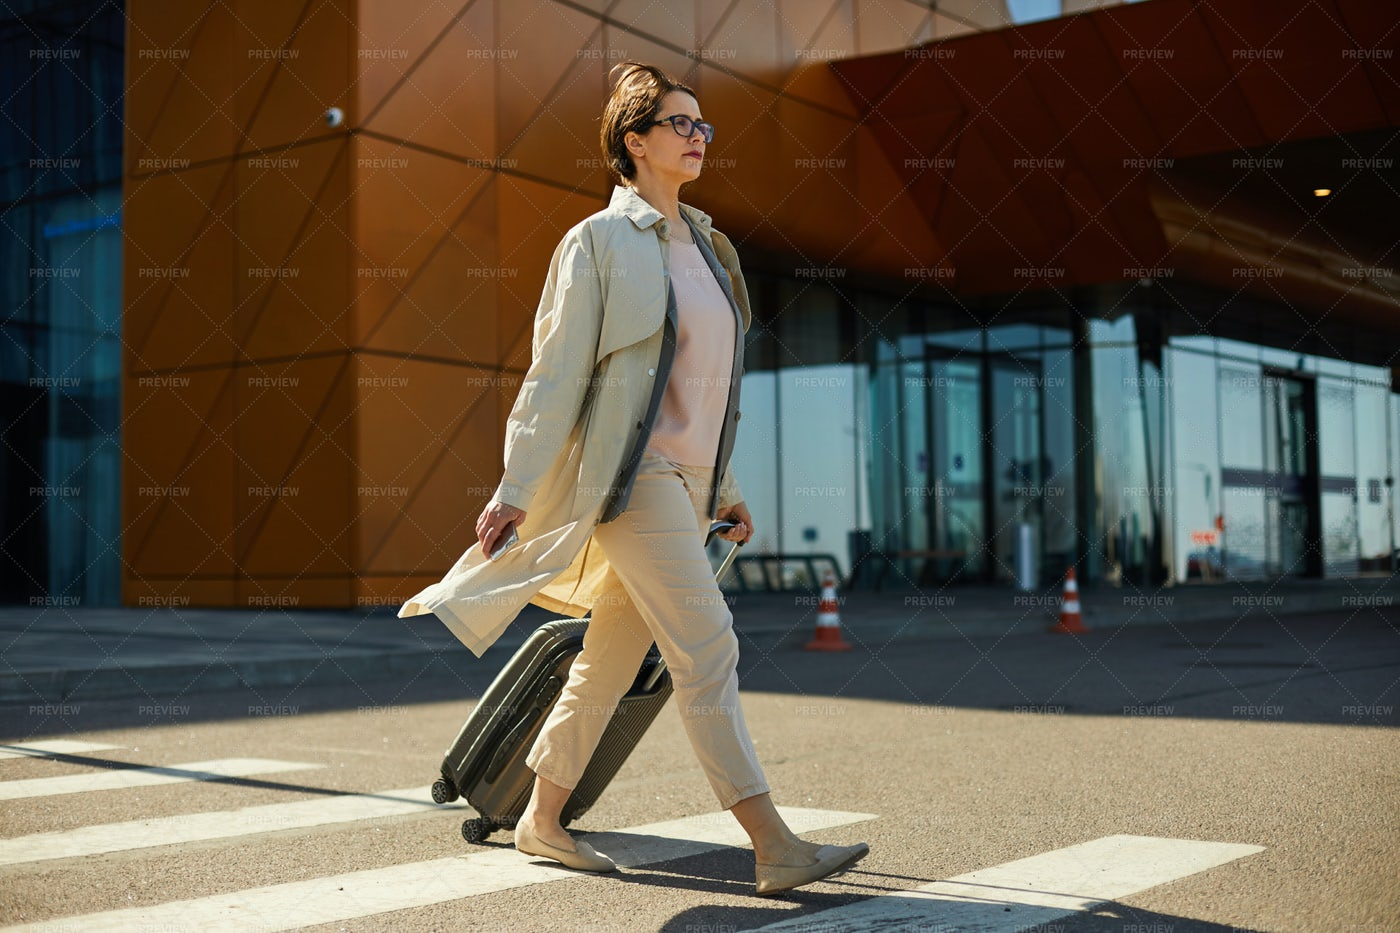 Confident Woman With Luggage...: Stock Photos